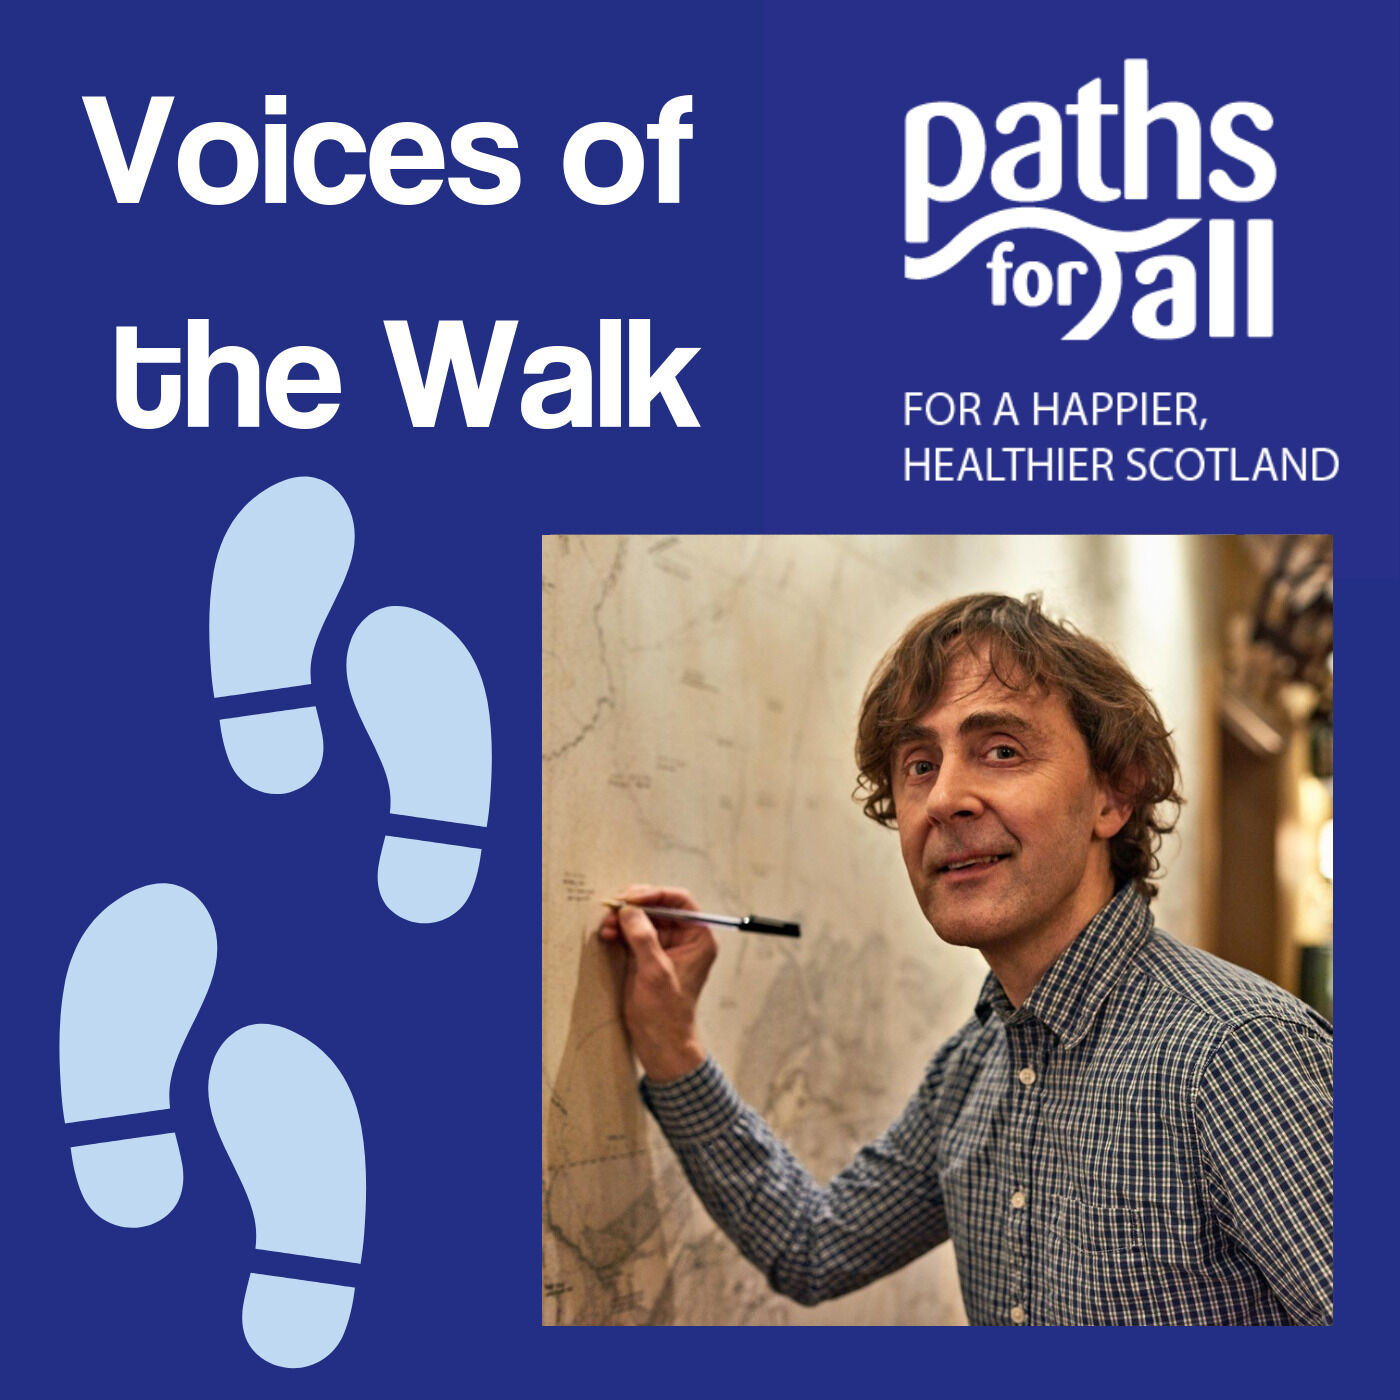 Alec Finlay: The art of going for a walk